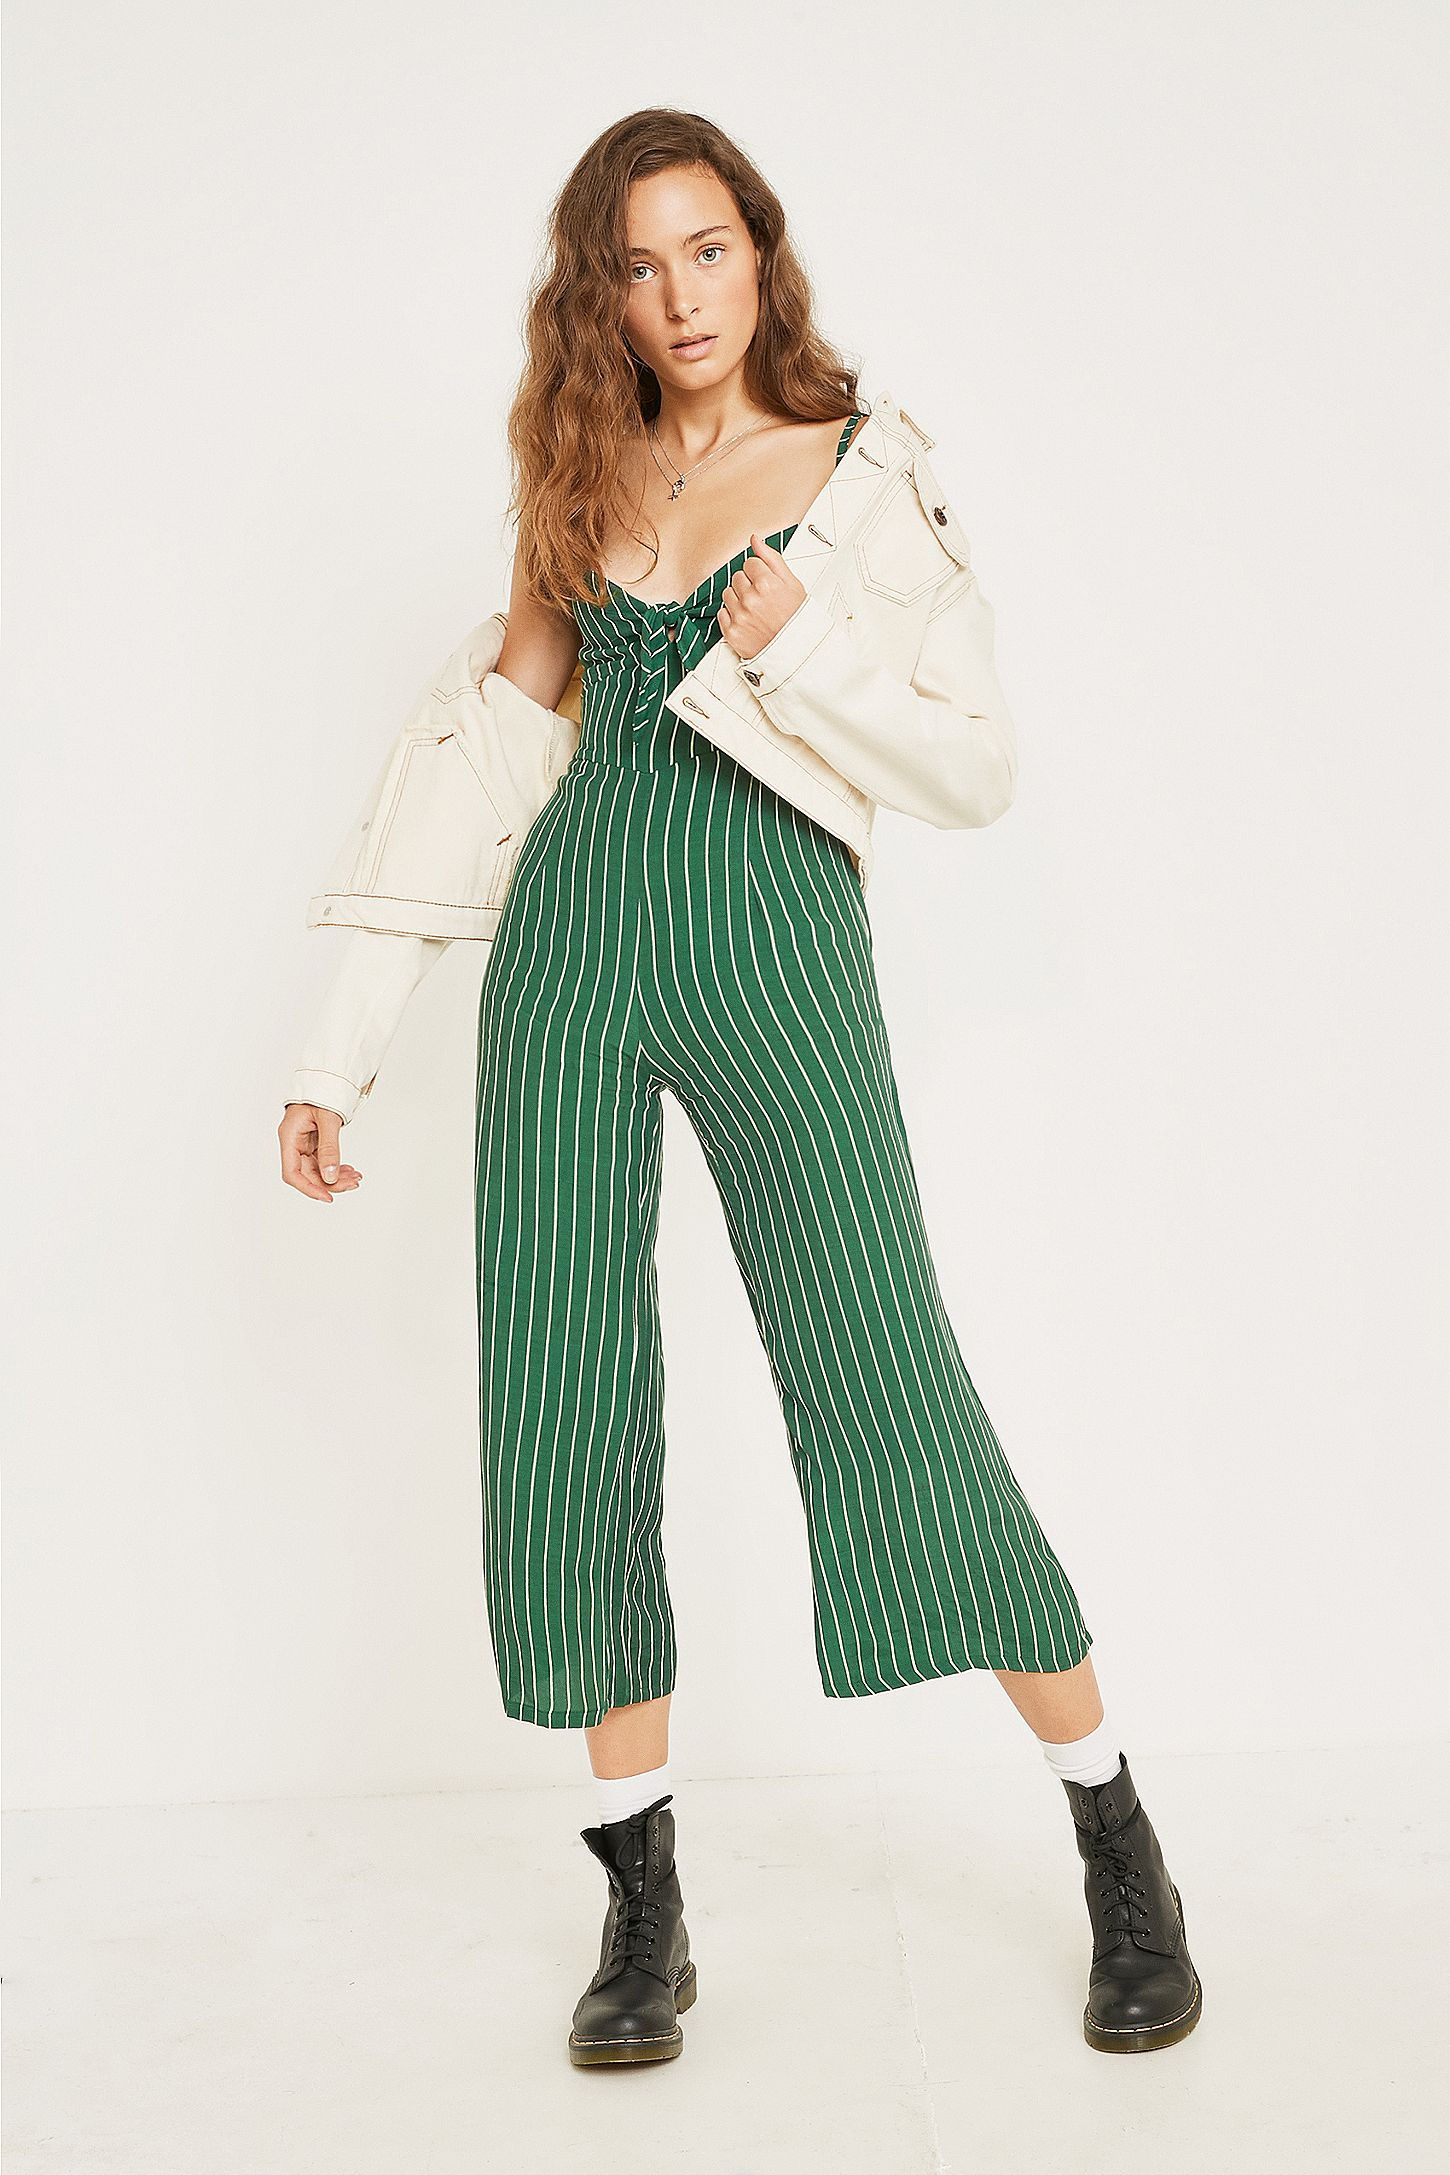 2c2e1ff1f09d Faithfull The Brand Presley Green Stripe Jumpsuit | Urban Outfitters UK